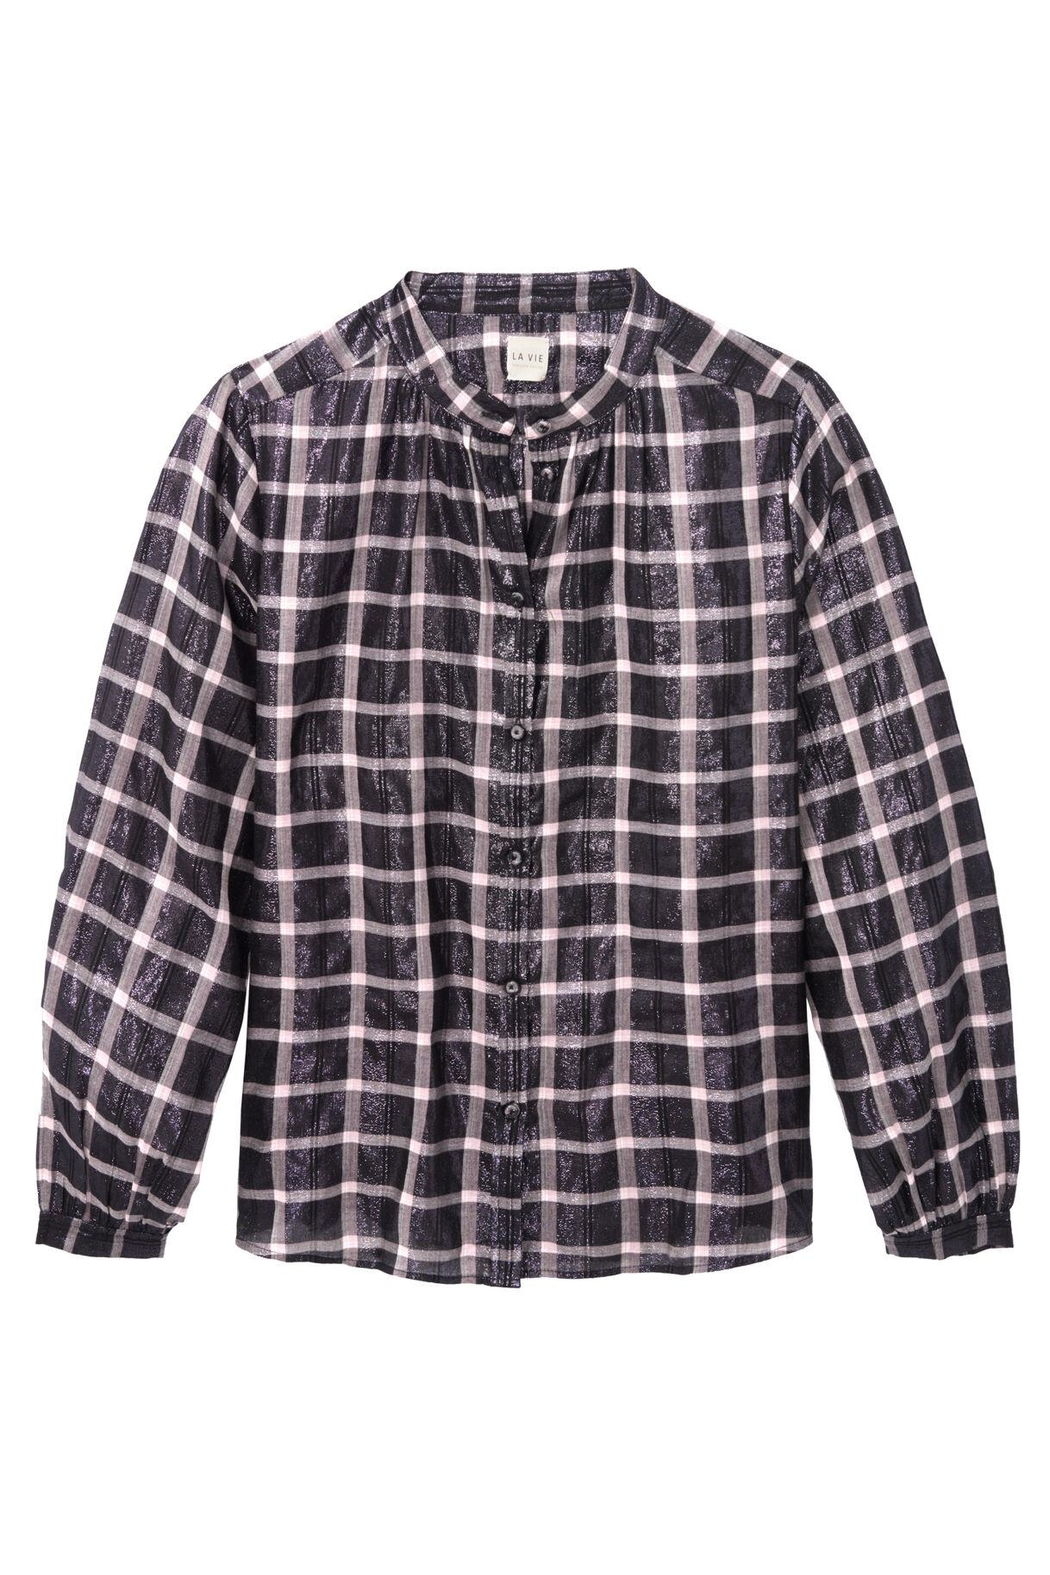 Rebecca Taylor Lame Plaid Top - Front Full Image